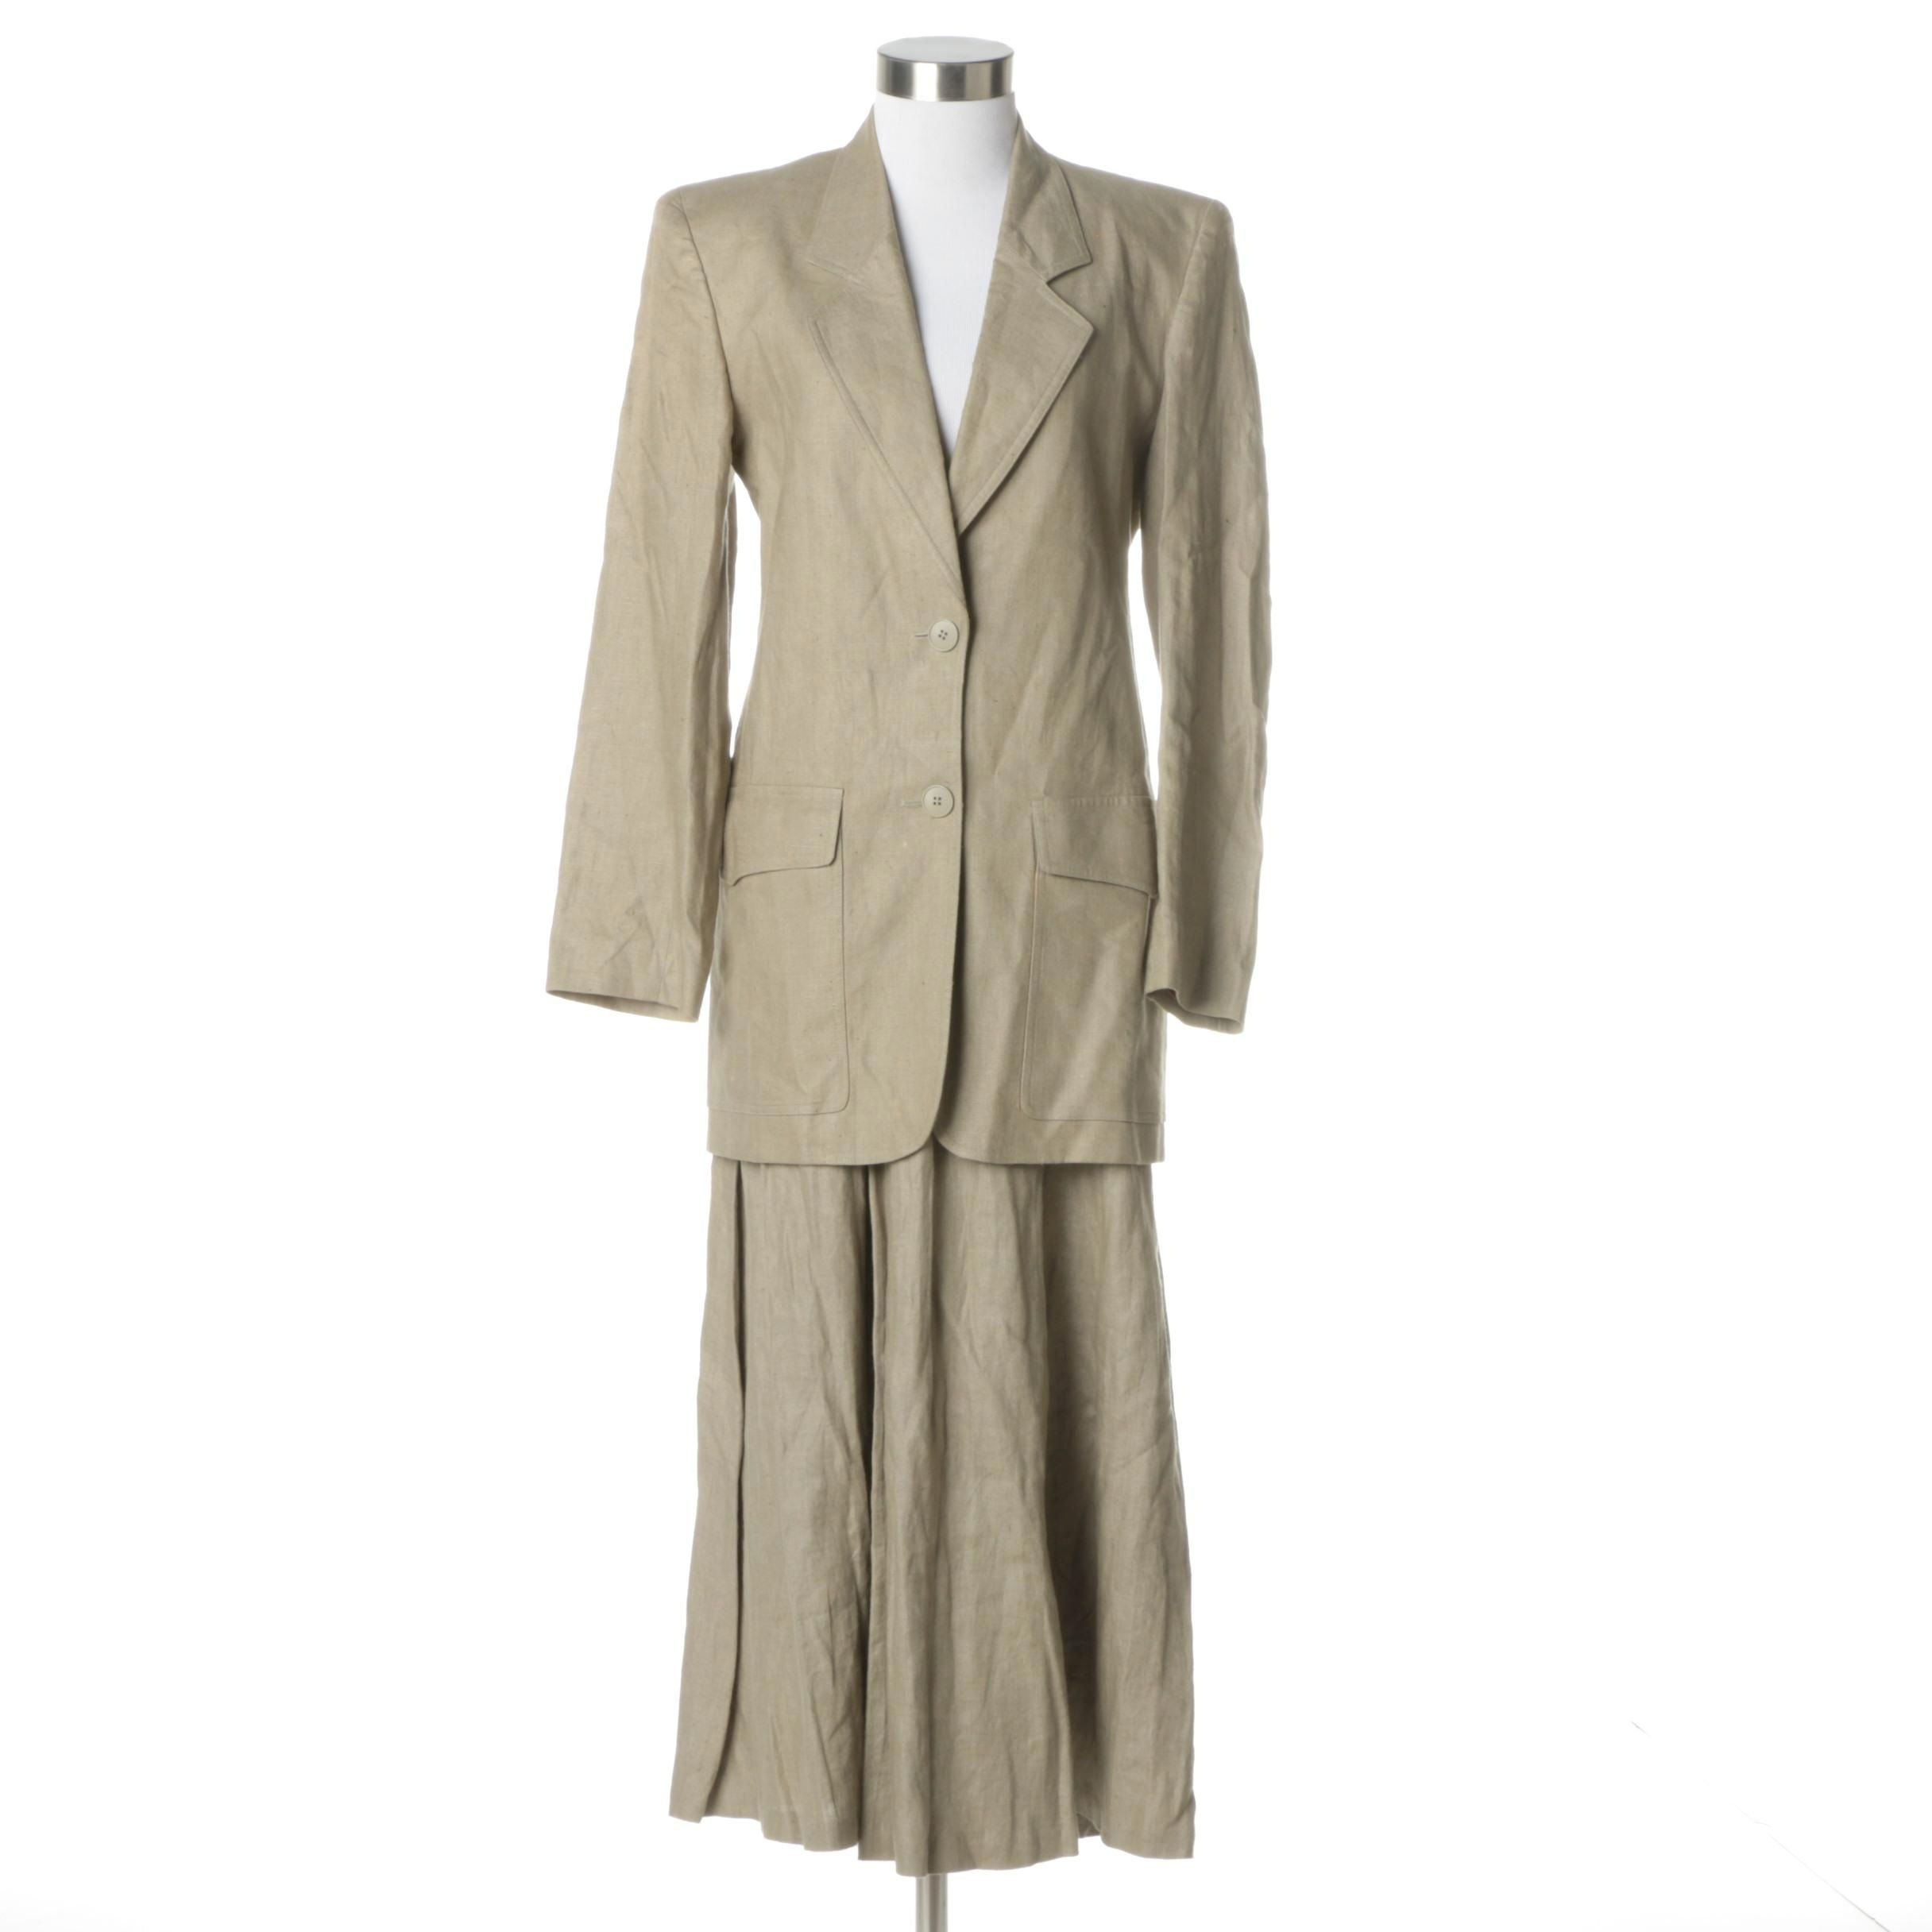 1980s Vintage Christian Dior Separates Linen Skirt Suit